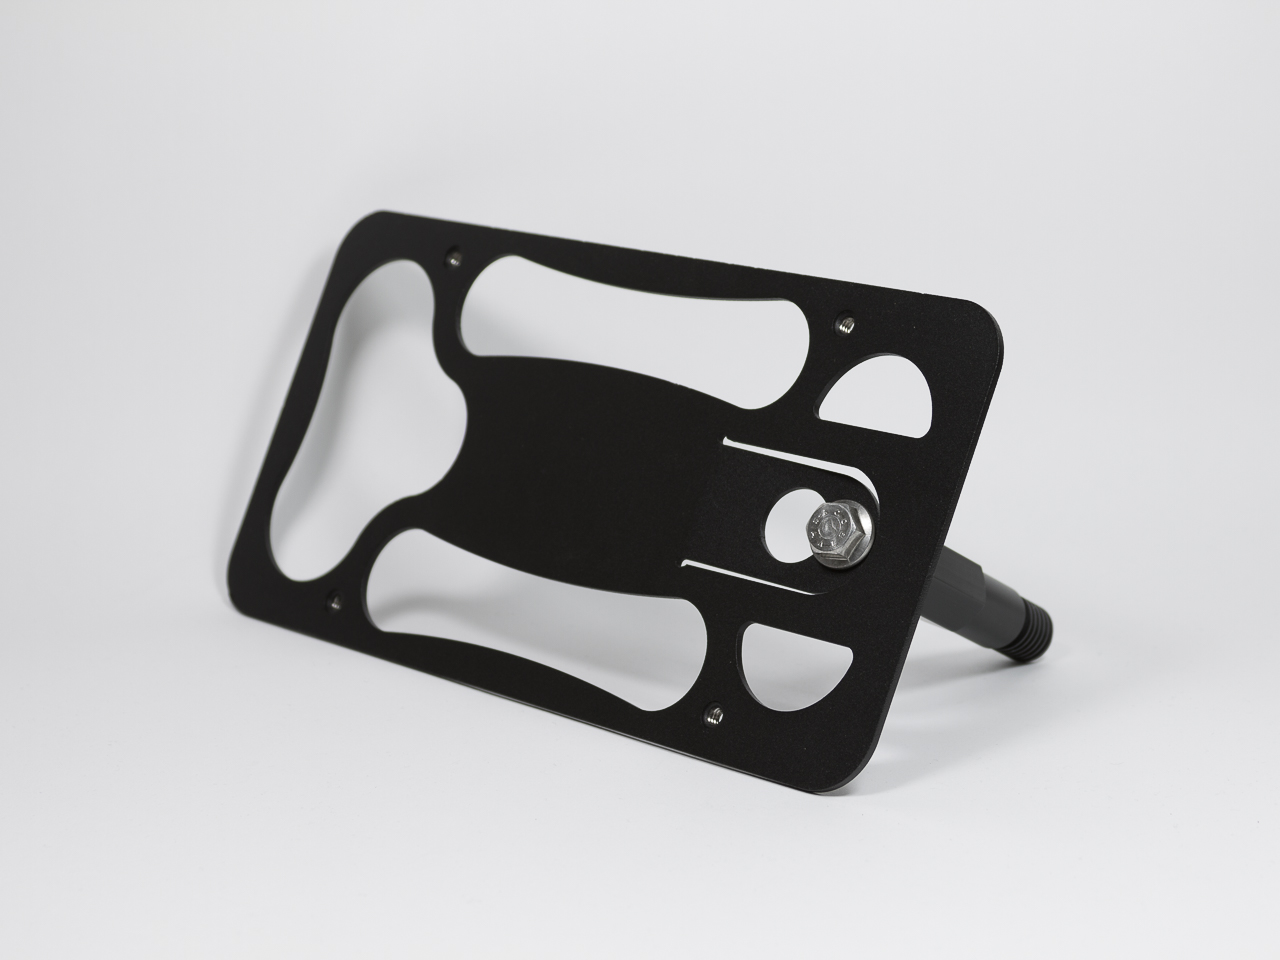 Made in USA Made of Stainless Steel /& Aluminum Installs in Seconds No Drilling 2013-2018 CravenSpeed The Platypus License Plate Mount for Volkswagen CC